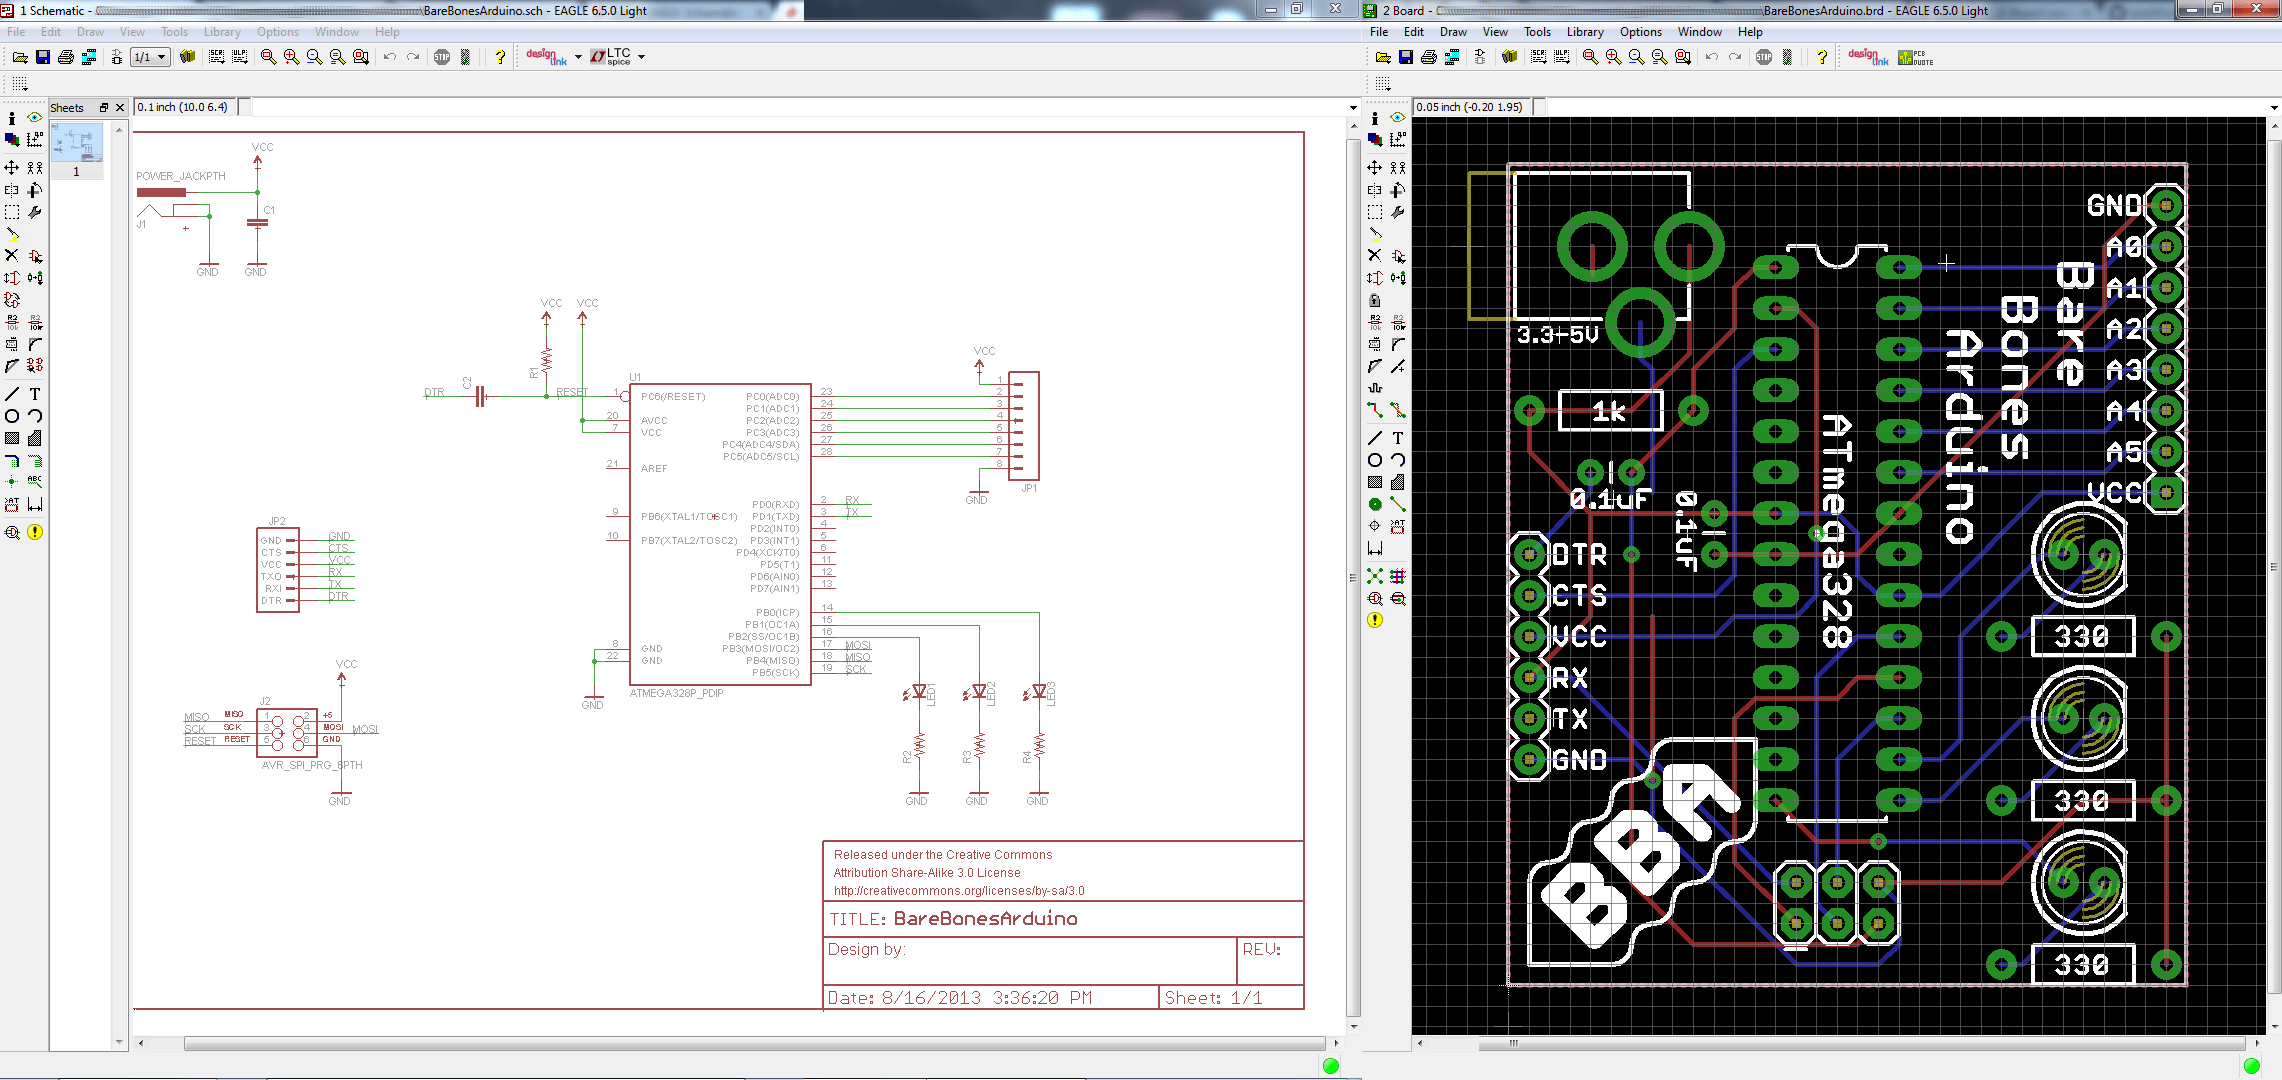 electrical one line diagram software 93 chevy truck wiring using eagle: schematic - learn.sparkfun.com